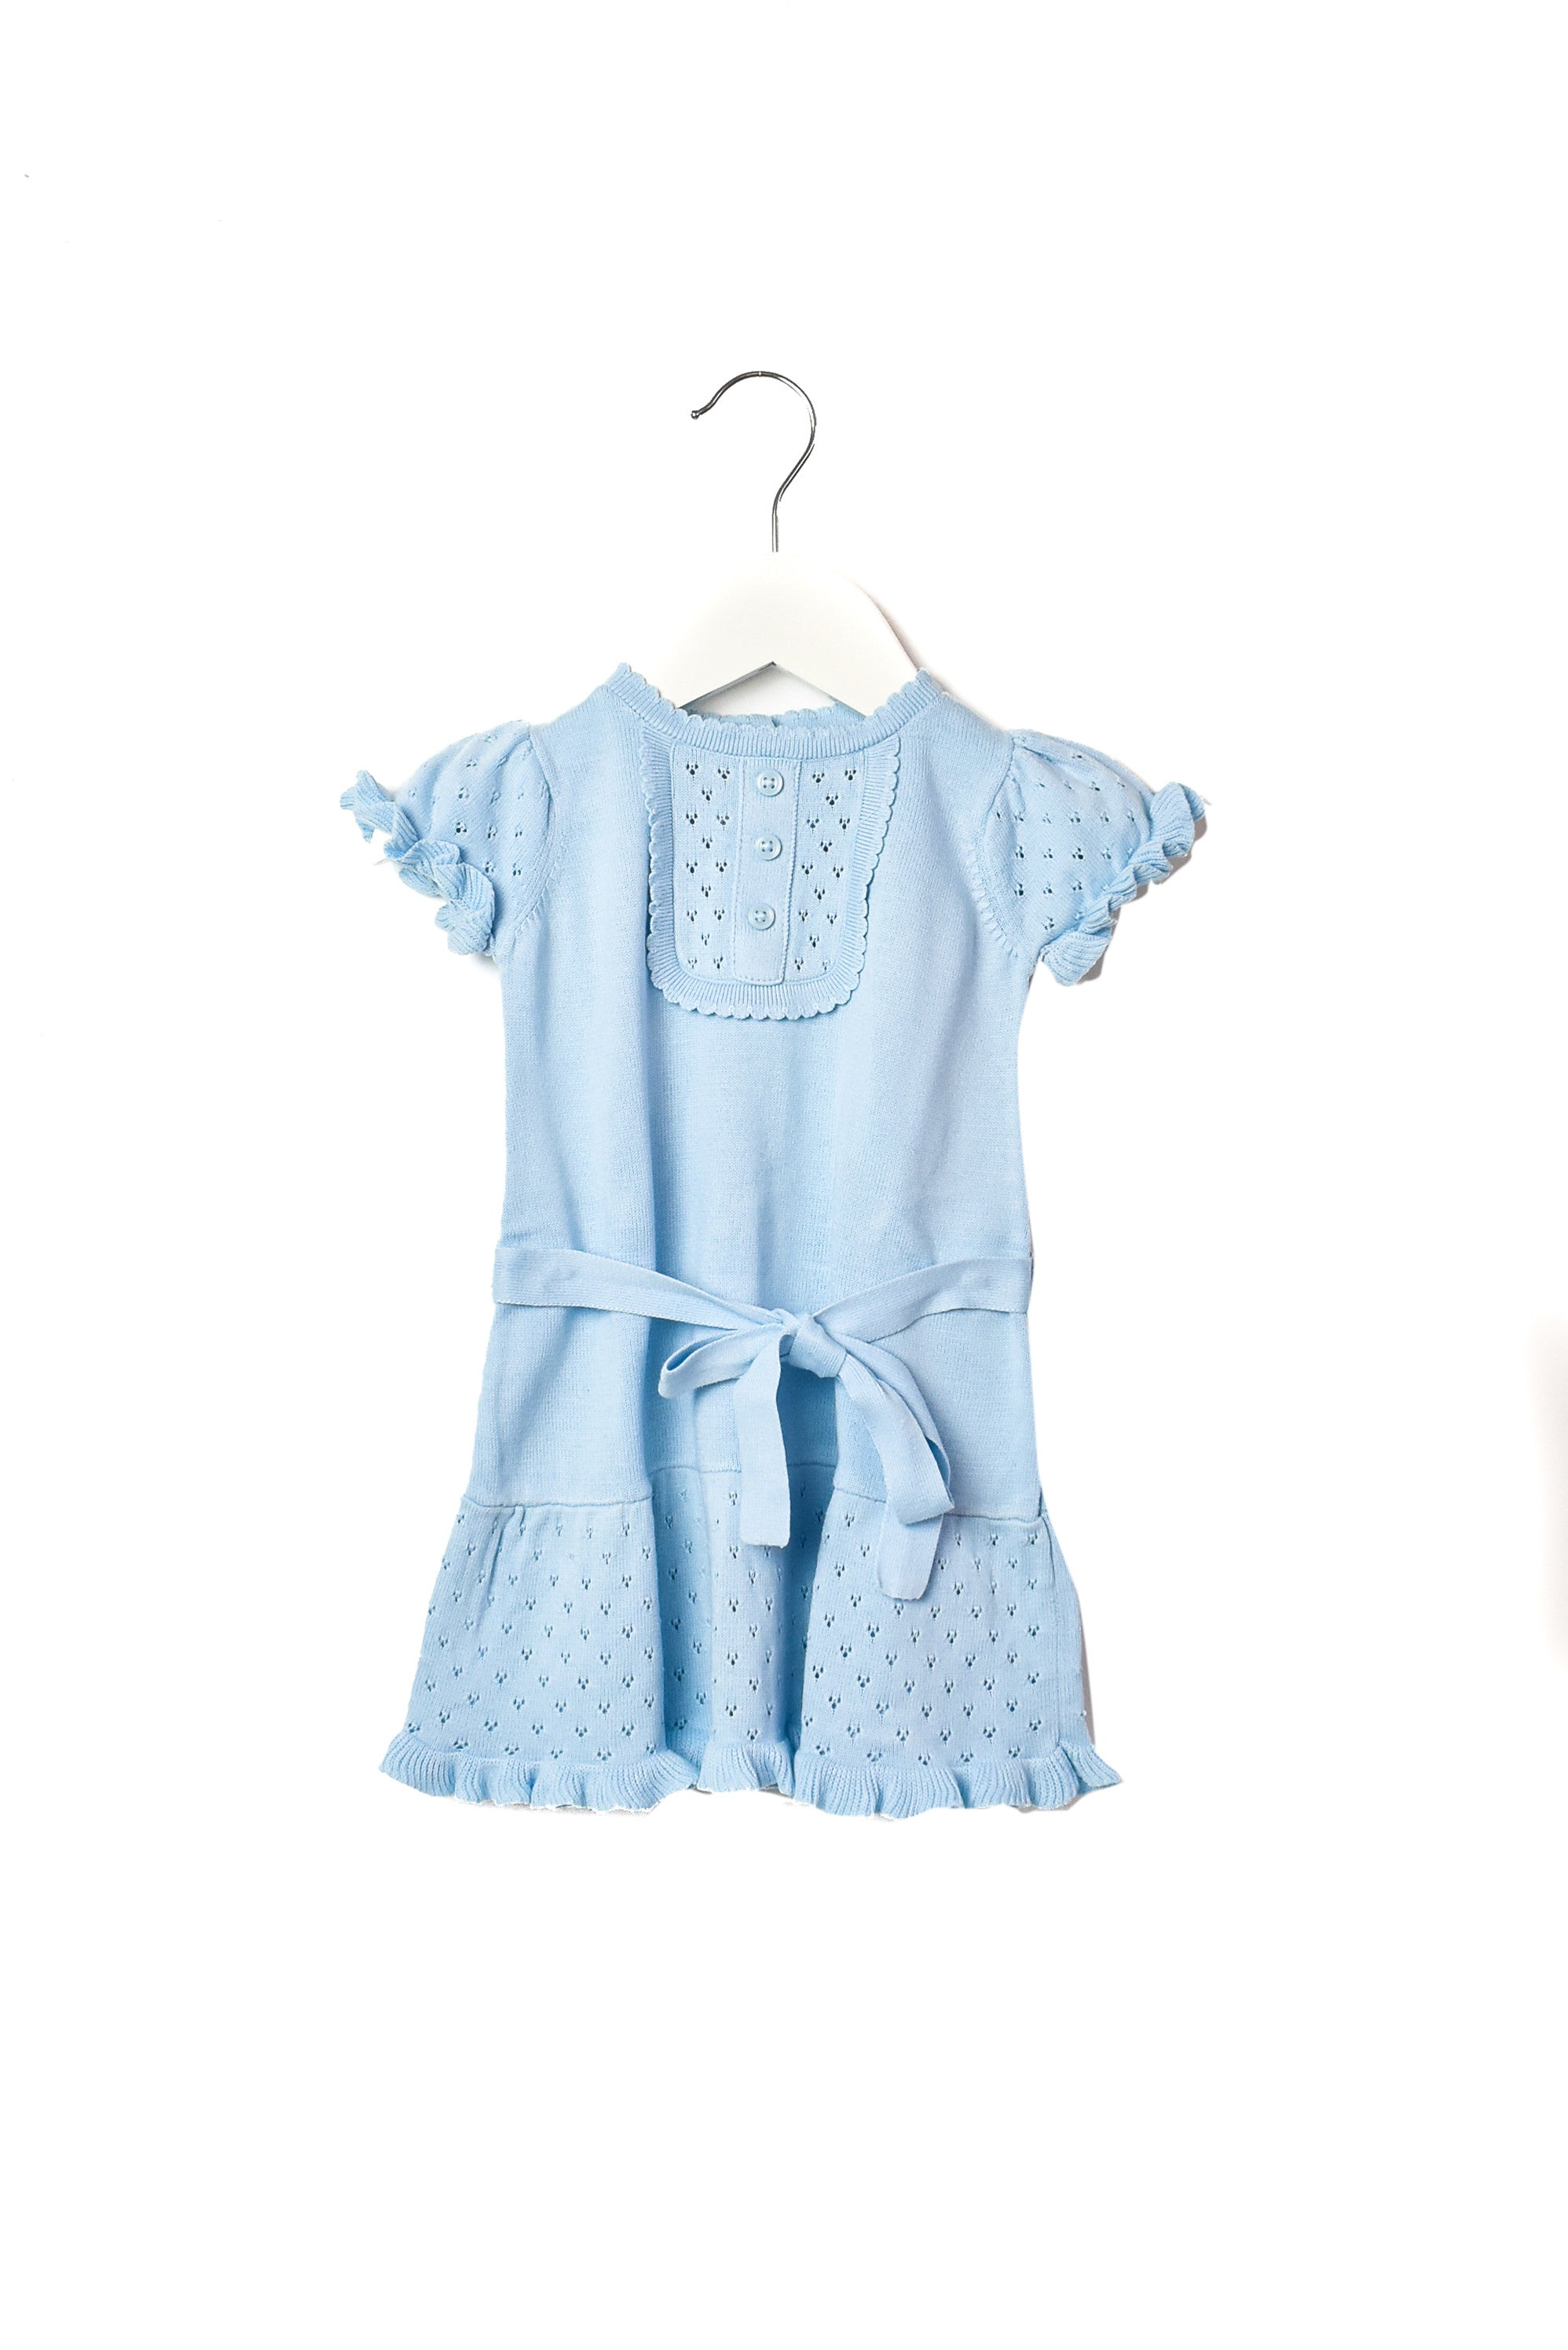 10004160 Janie & Jack Baby~Dress 6-12M, Janie & Jack Retykle | Online Baby & Kids Clothing Hong Kong